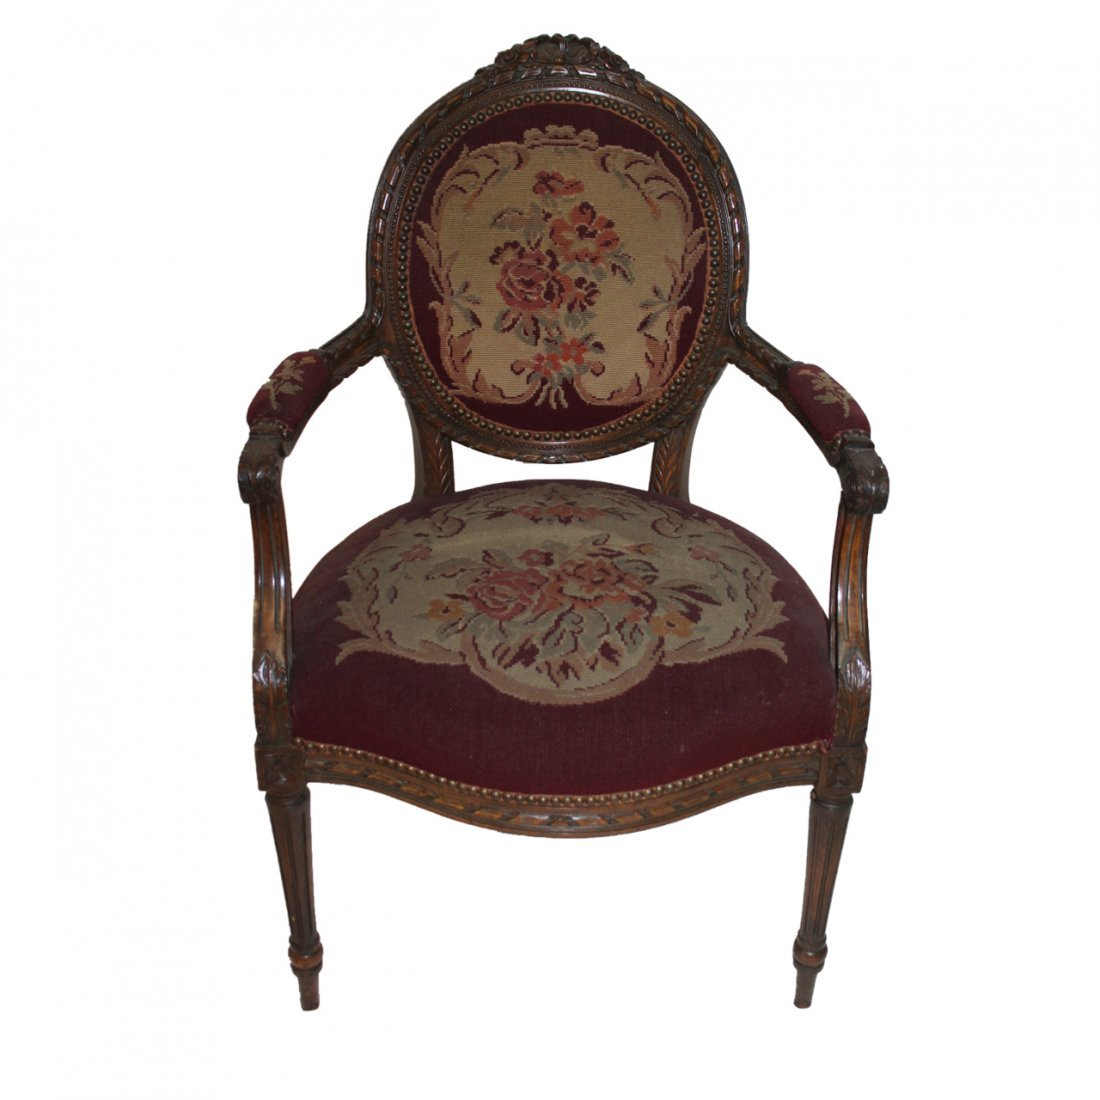 French Arm Chair with Tapestry Seat